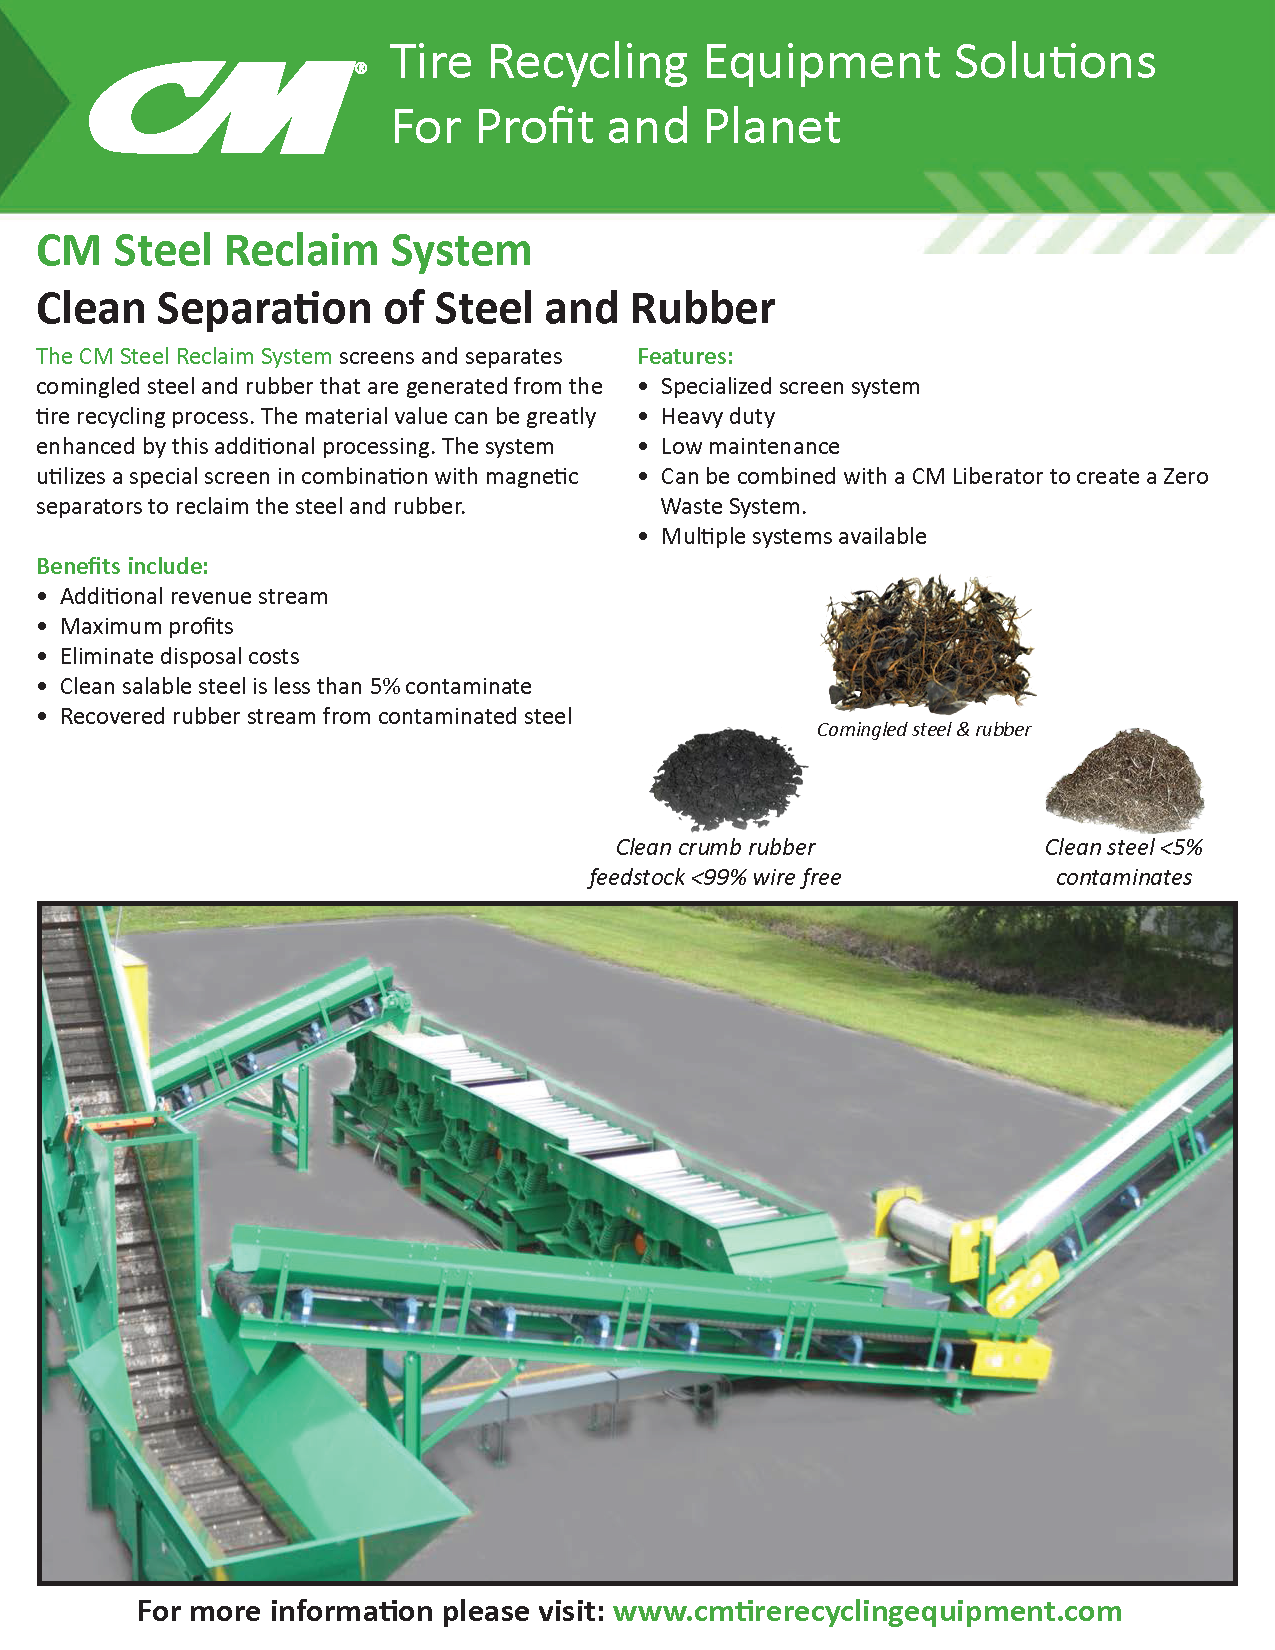 Learn more by viewing the CM Steel Reclaim System Brochure